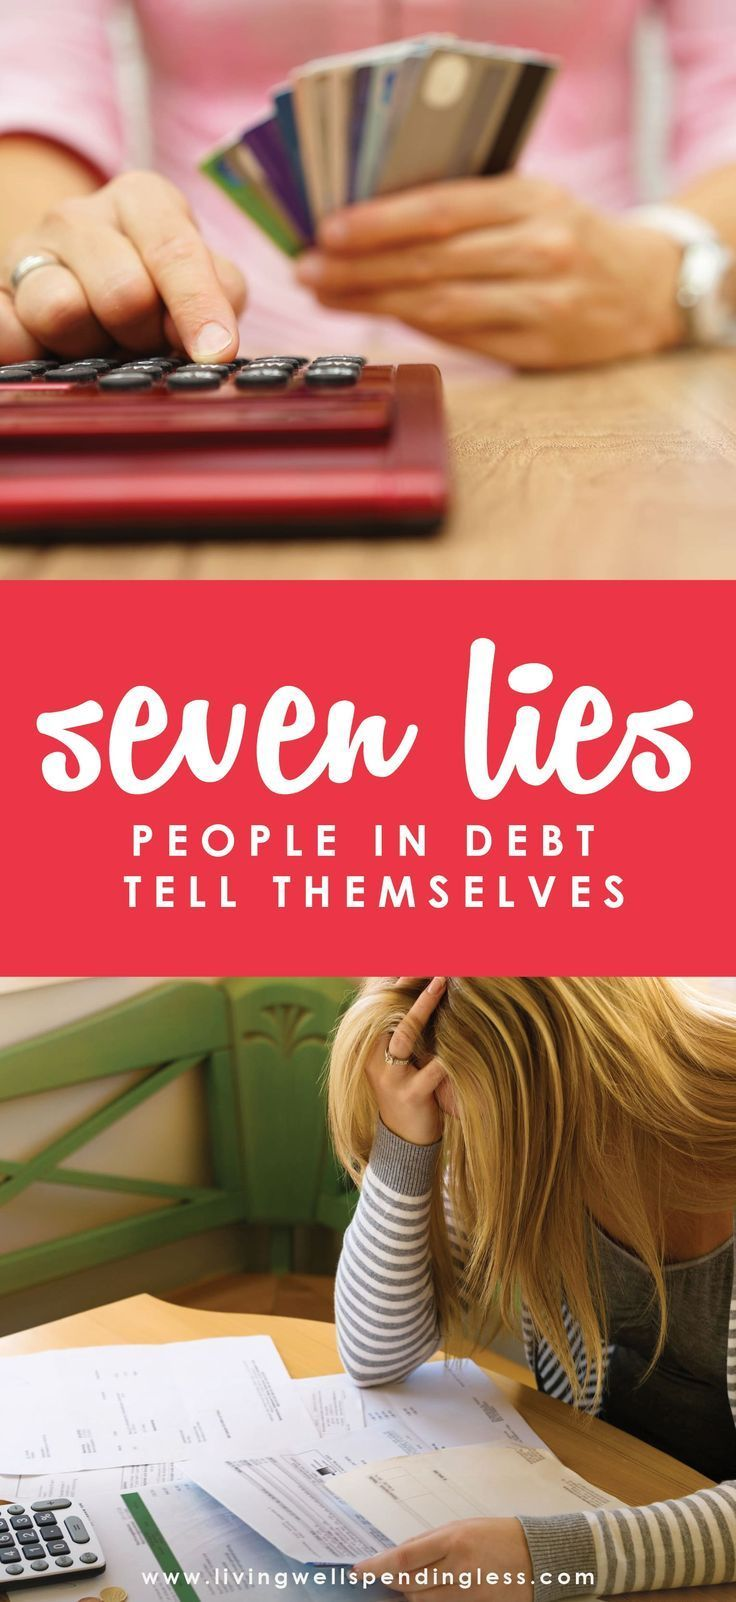 7 Lies People in Debt Tell Themselves